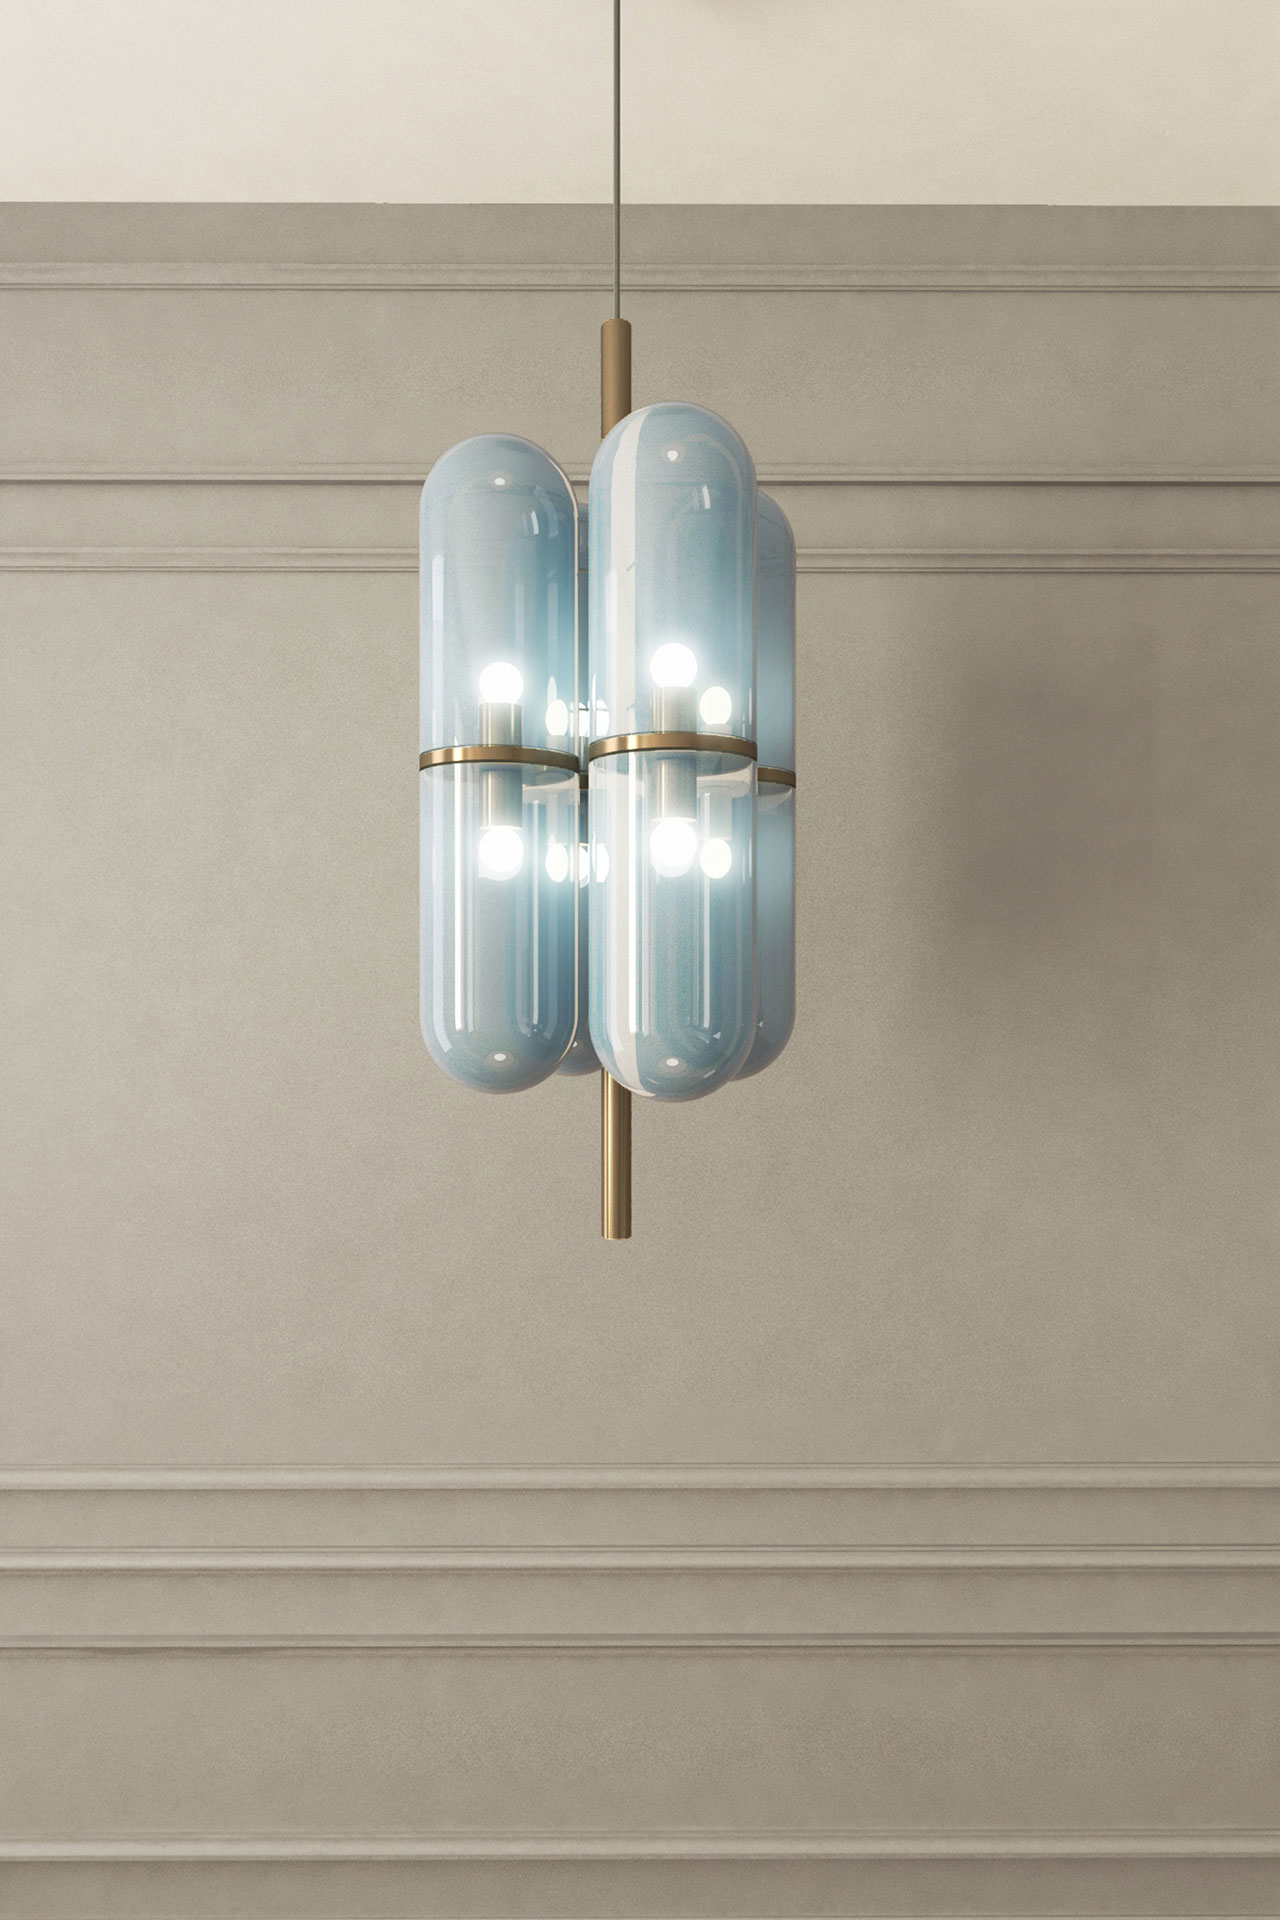 The Charlotte lamp by Federico Peri was presented at Nilufar Gallery.